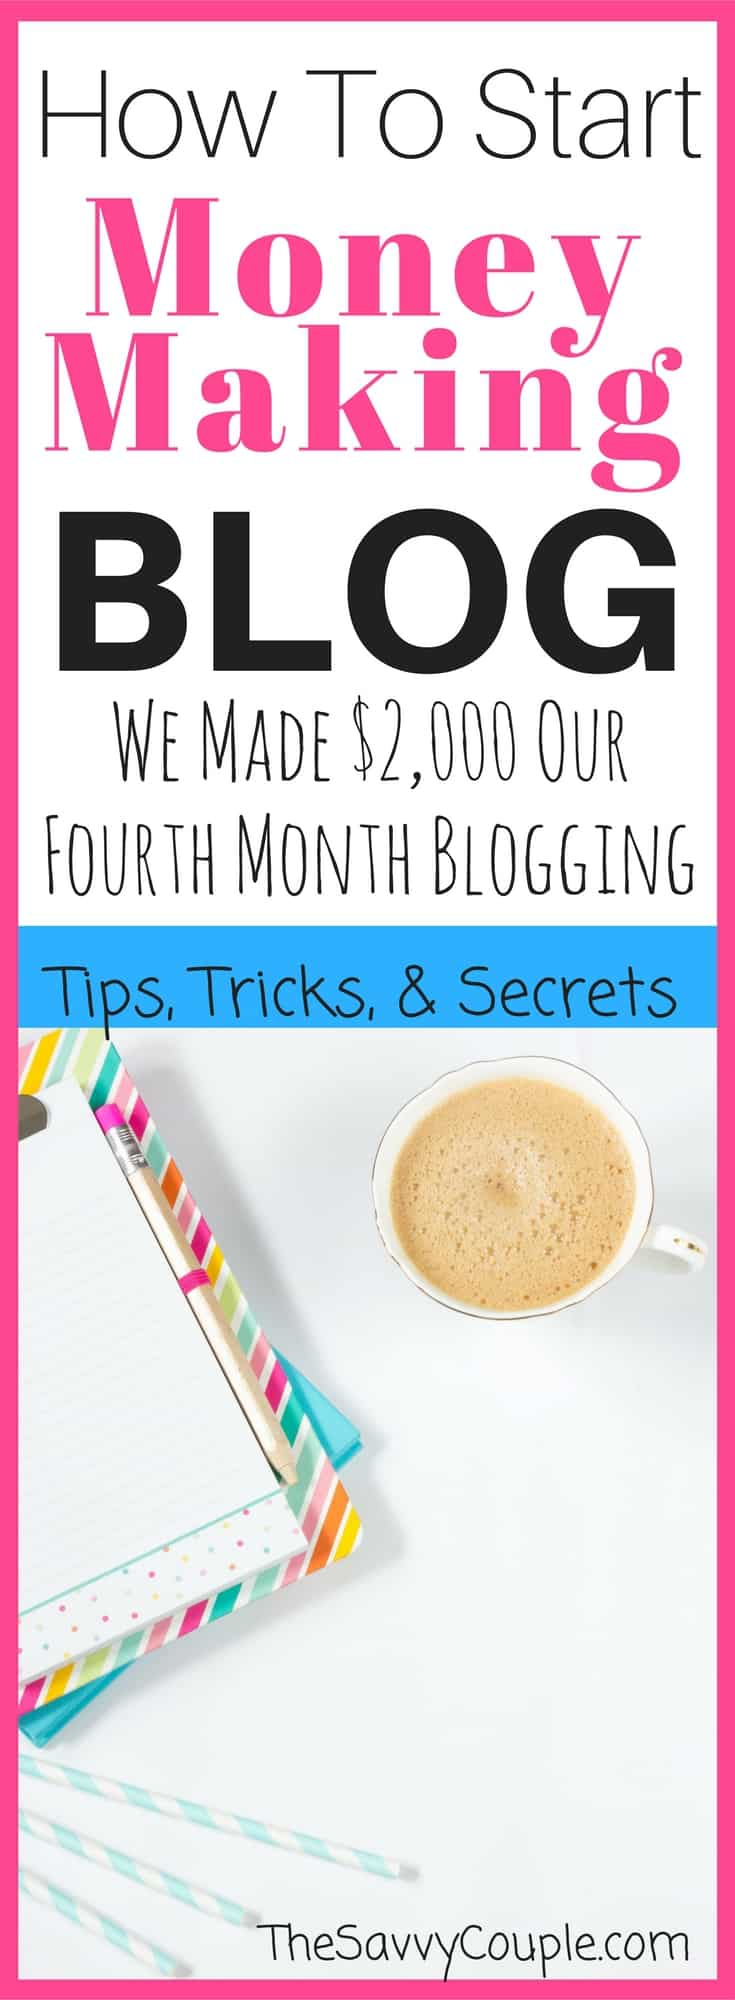 In this step by step tutorial, you will learn how to start a successful money making blog. Starting a blog can completely change your life like it has for us! Start your blog today in about 10 mins. #Howtoblog #bloggingtips #makemoneyblogging #startablog